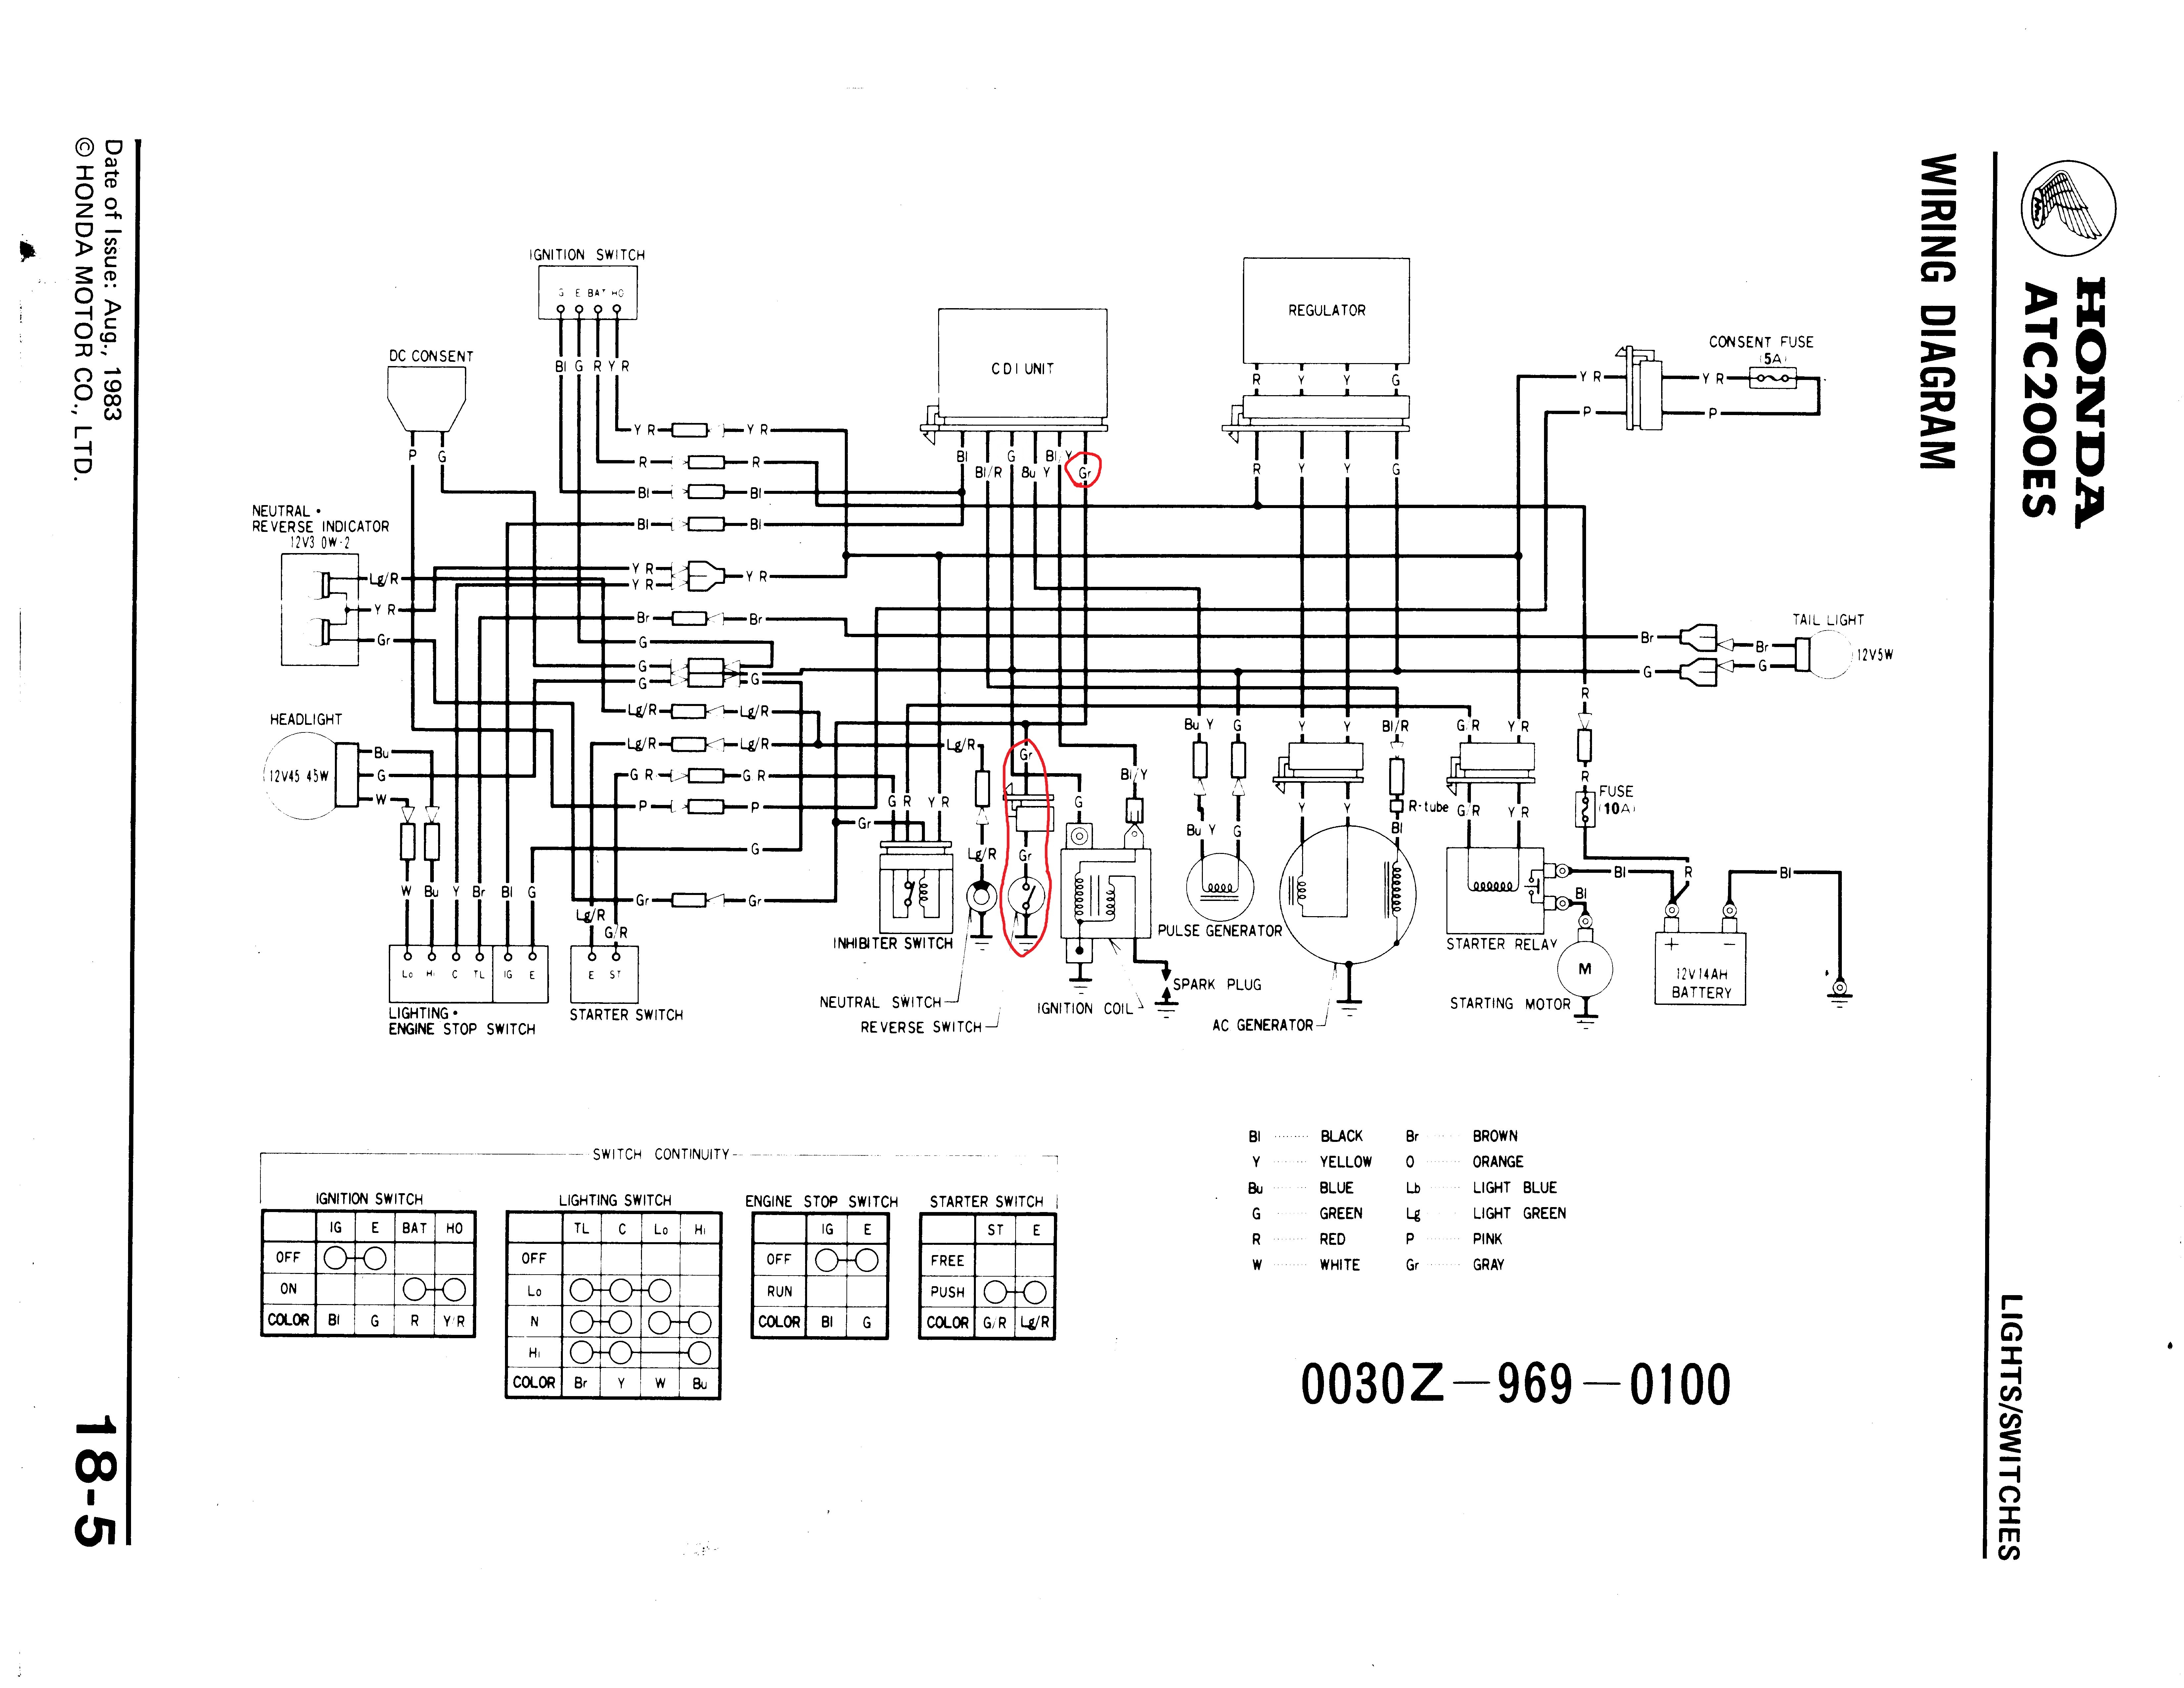 1998 honda fourtrax 300 wiring diagram Collection-Honda 300 Fourtrax Wiring 18-f